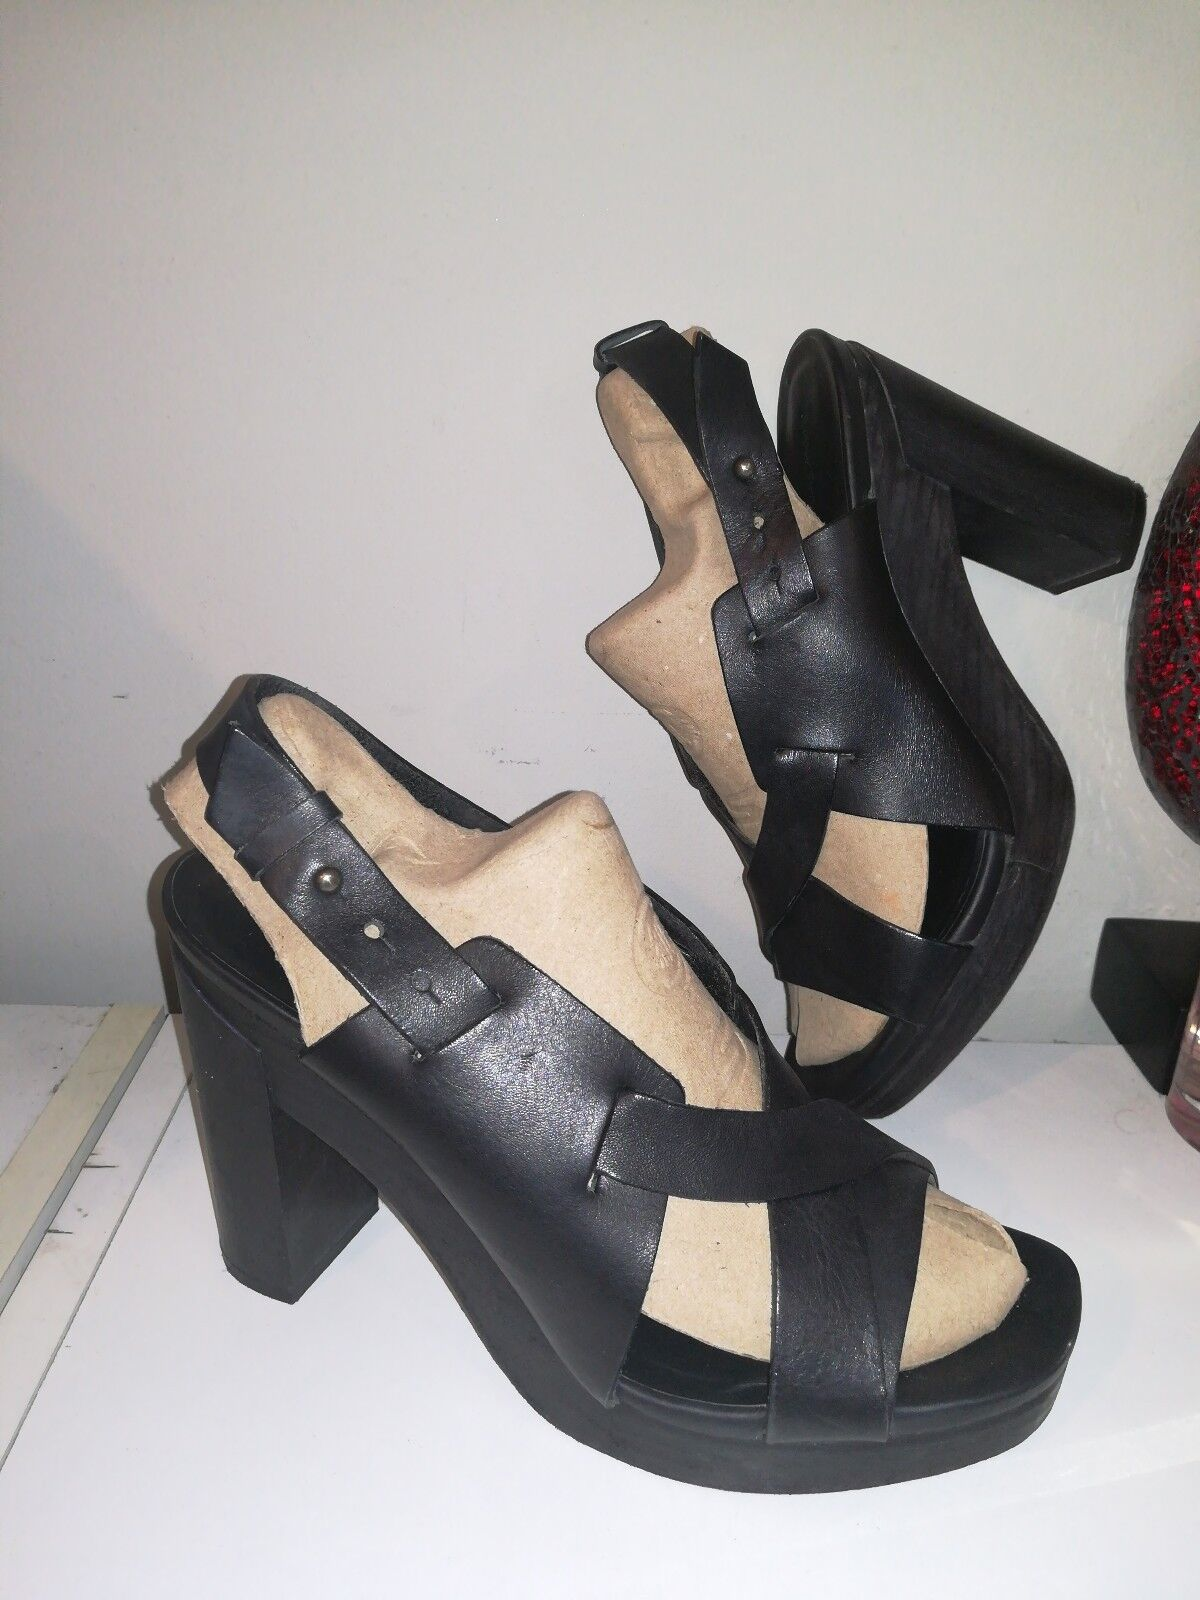 & Other Stories Women's shoes - Size 6